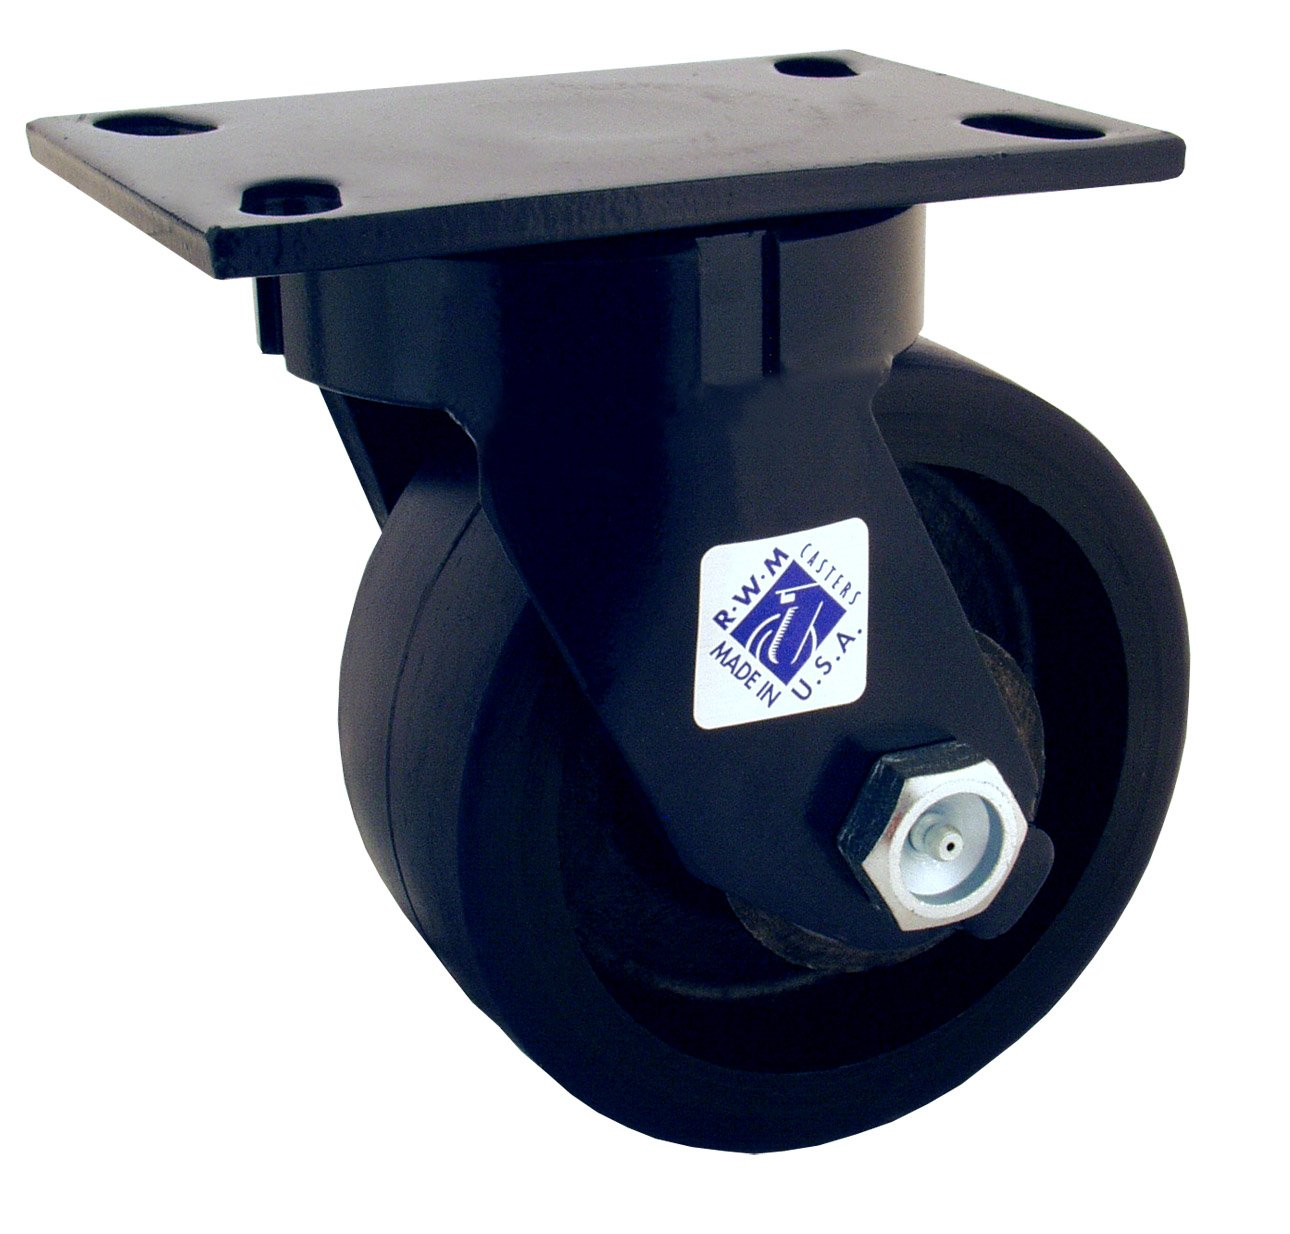 RWM Casters 75 Series Plate Caster, Swivel, Kingpinless, Cast Iron Wheel, Roller Bearing, 3000 lbs Capacity, 6'' Wheel Dia, 3'' Wheel Width, 7-1/2'' Mount Height, 6-1/2'' Plate Length, 4-1/2'' Plate Width